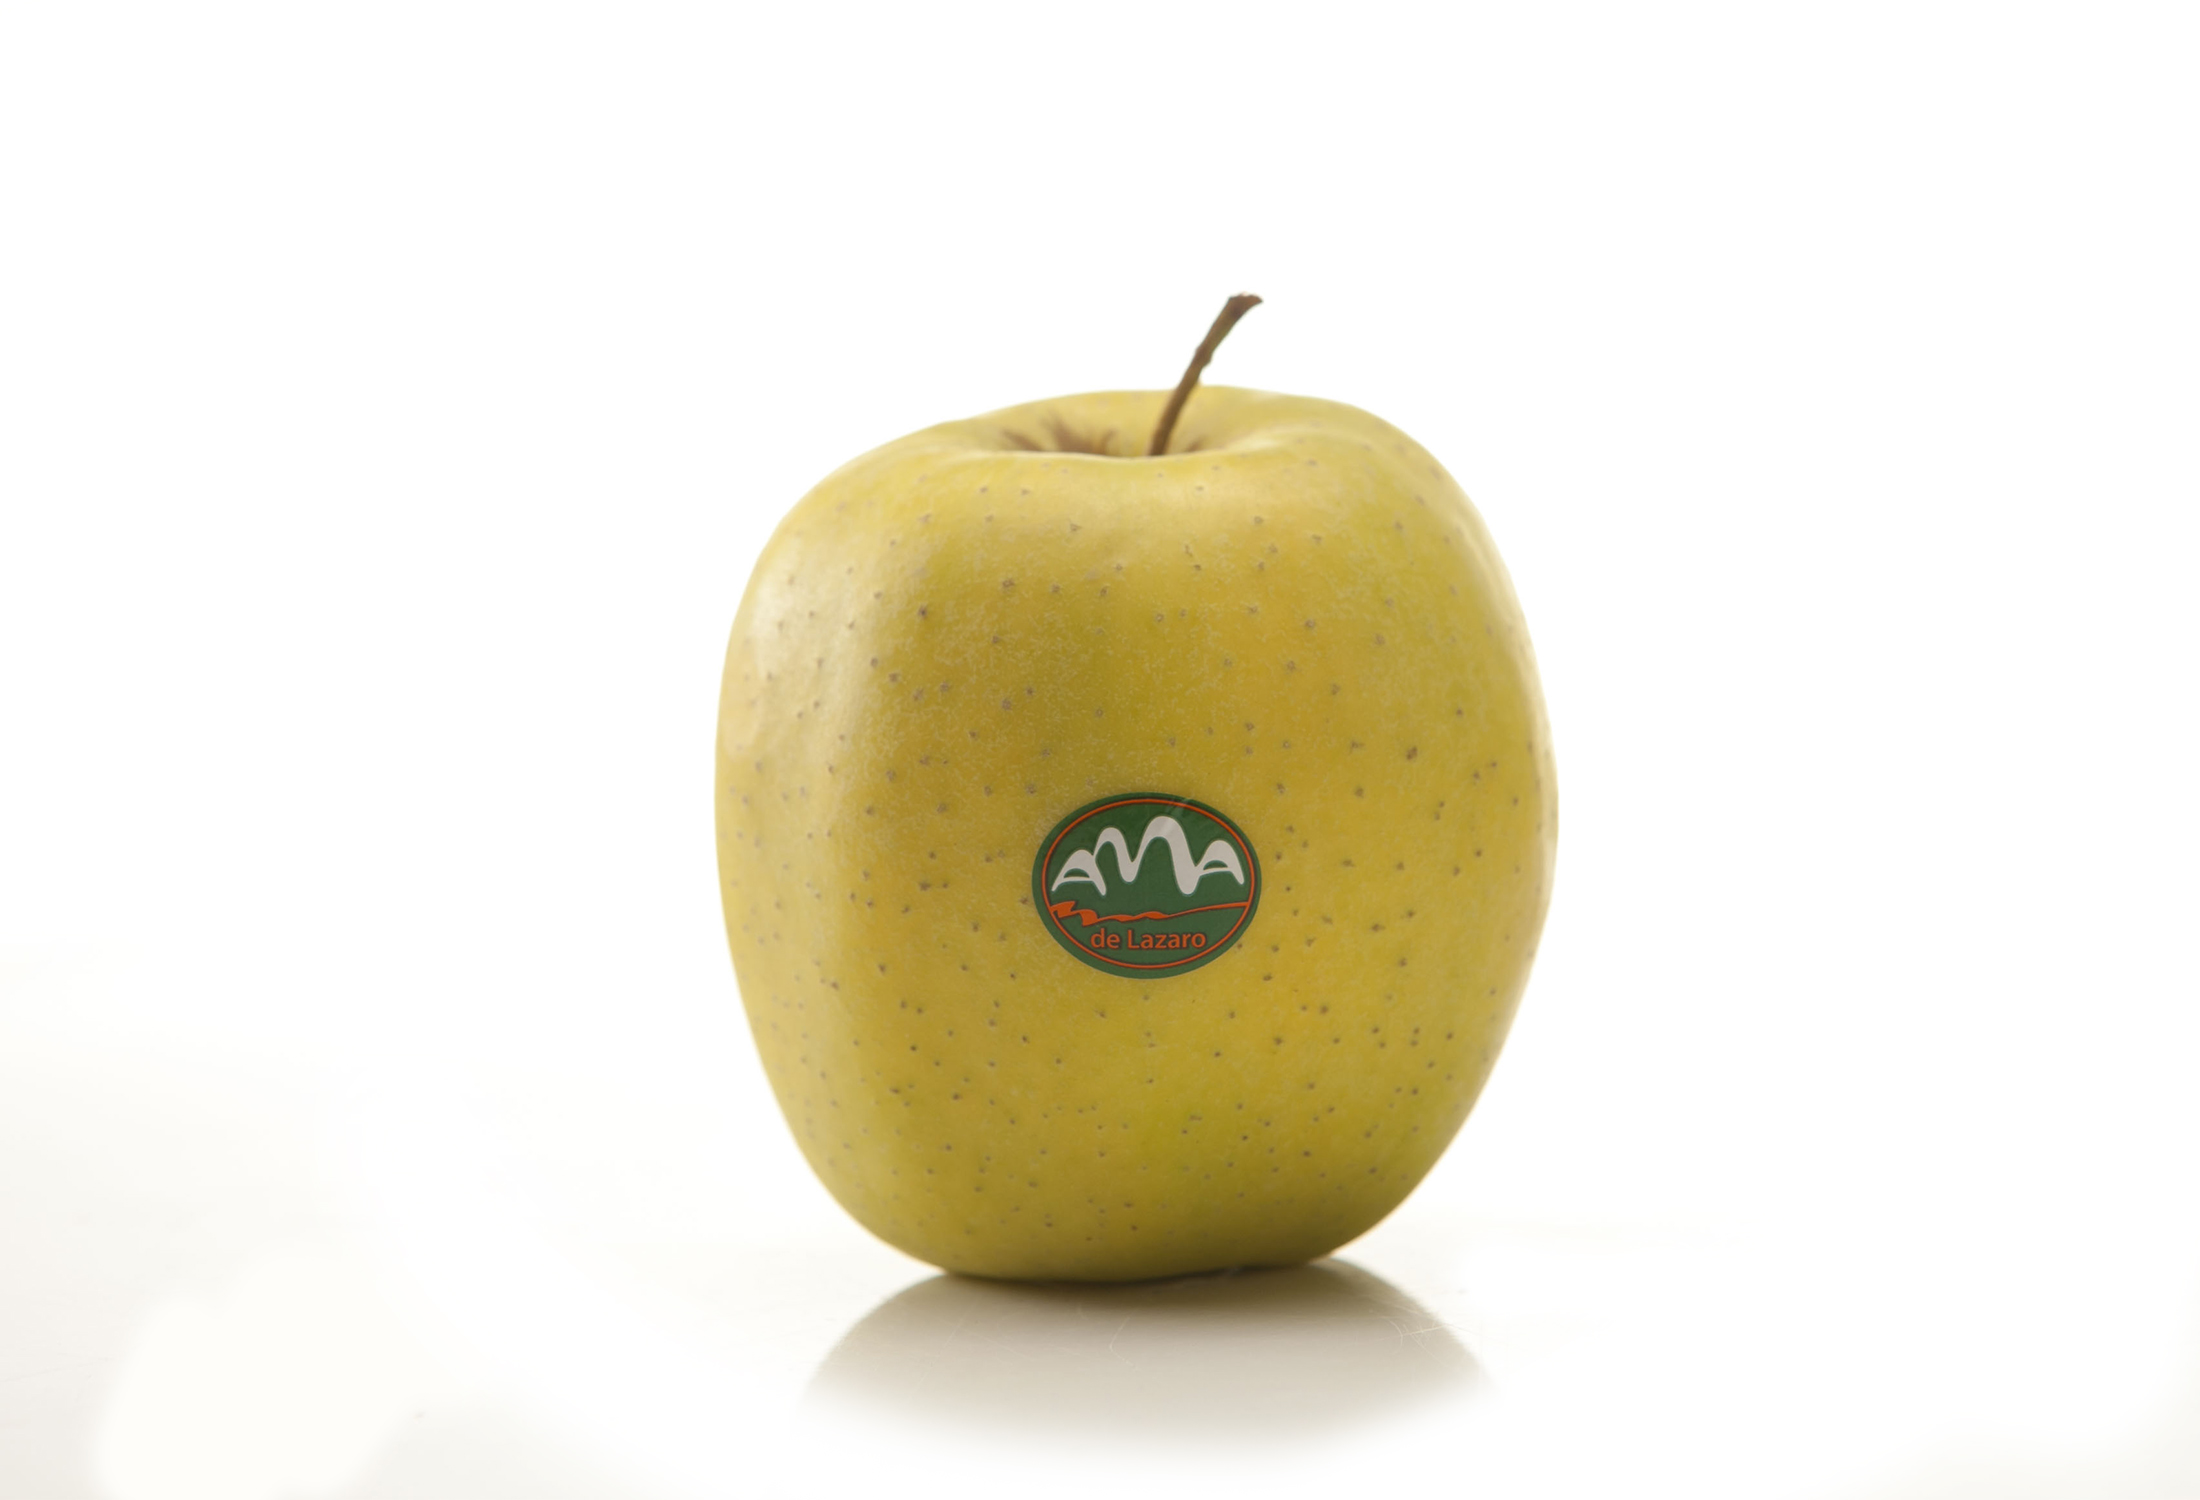 Manzana Golden AMA